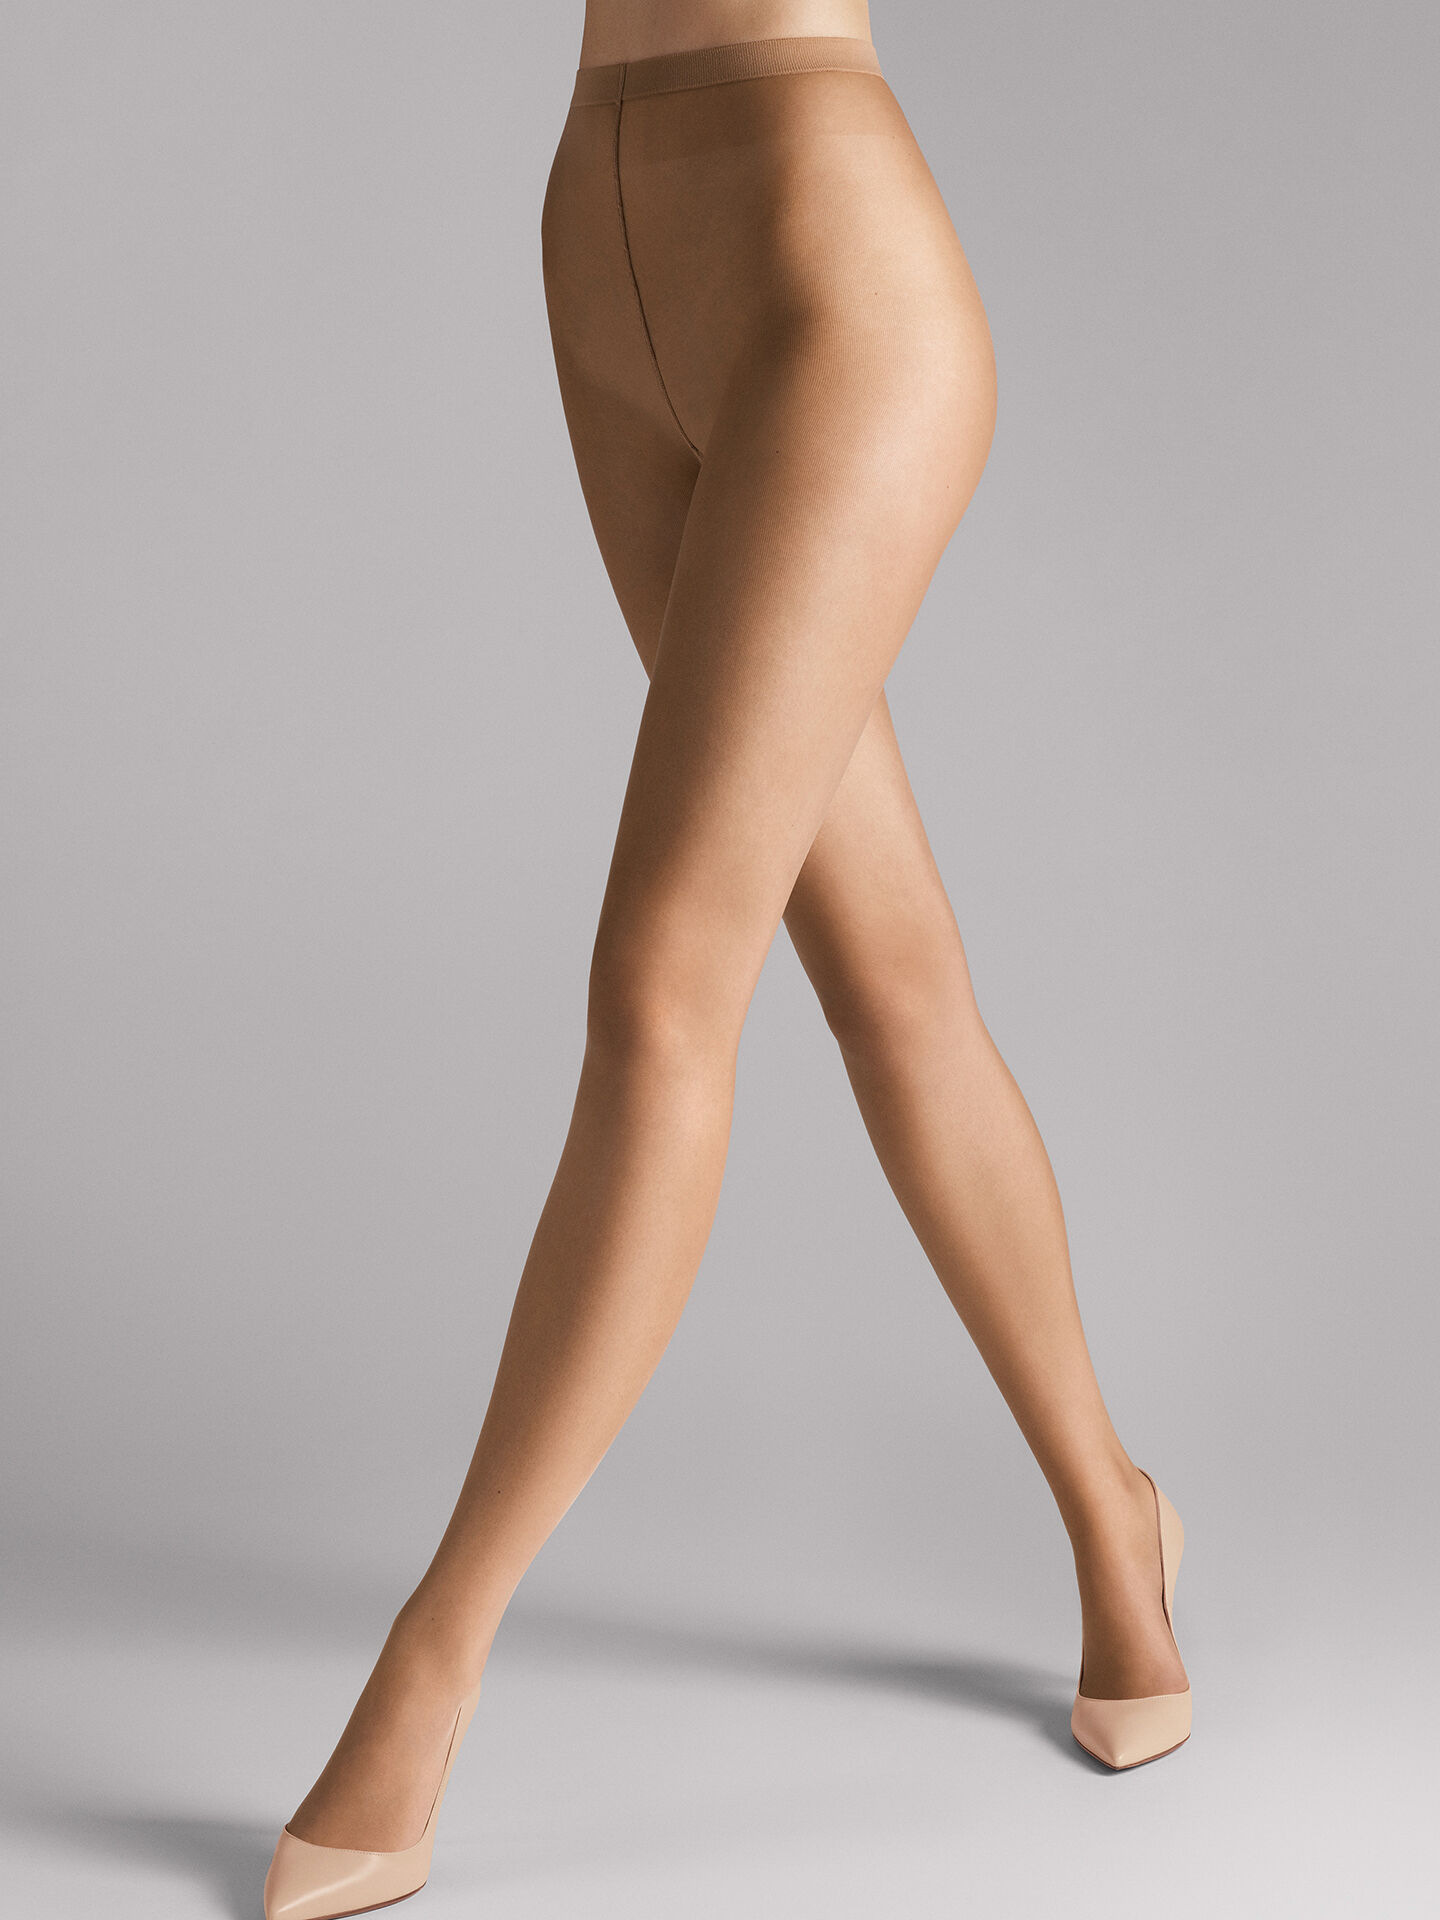 Demand for pantyhose exploded